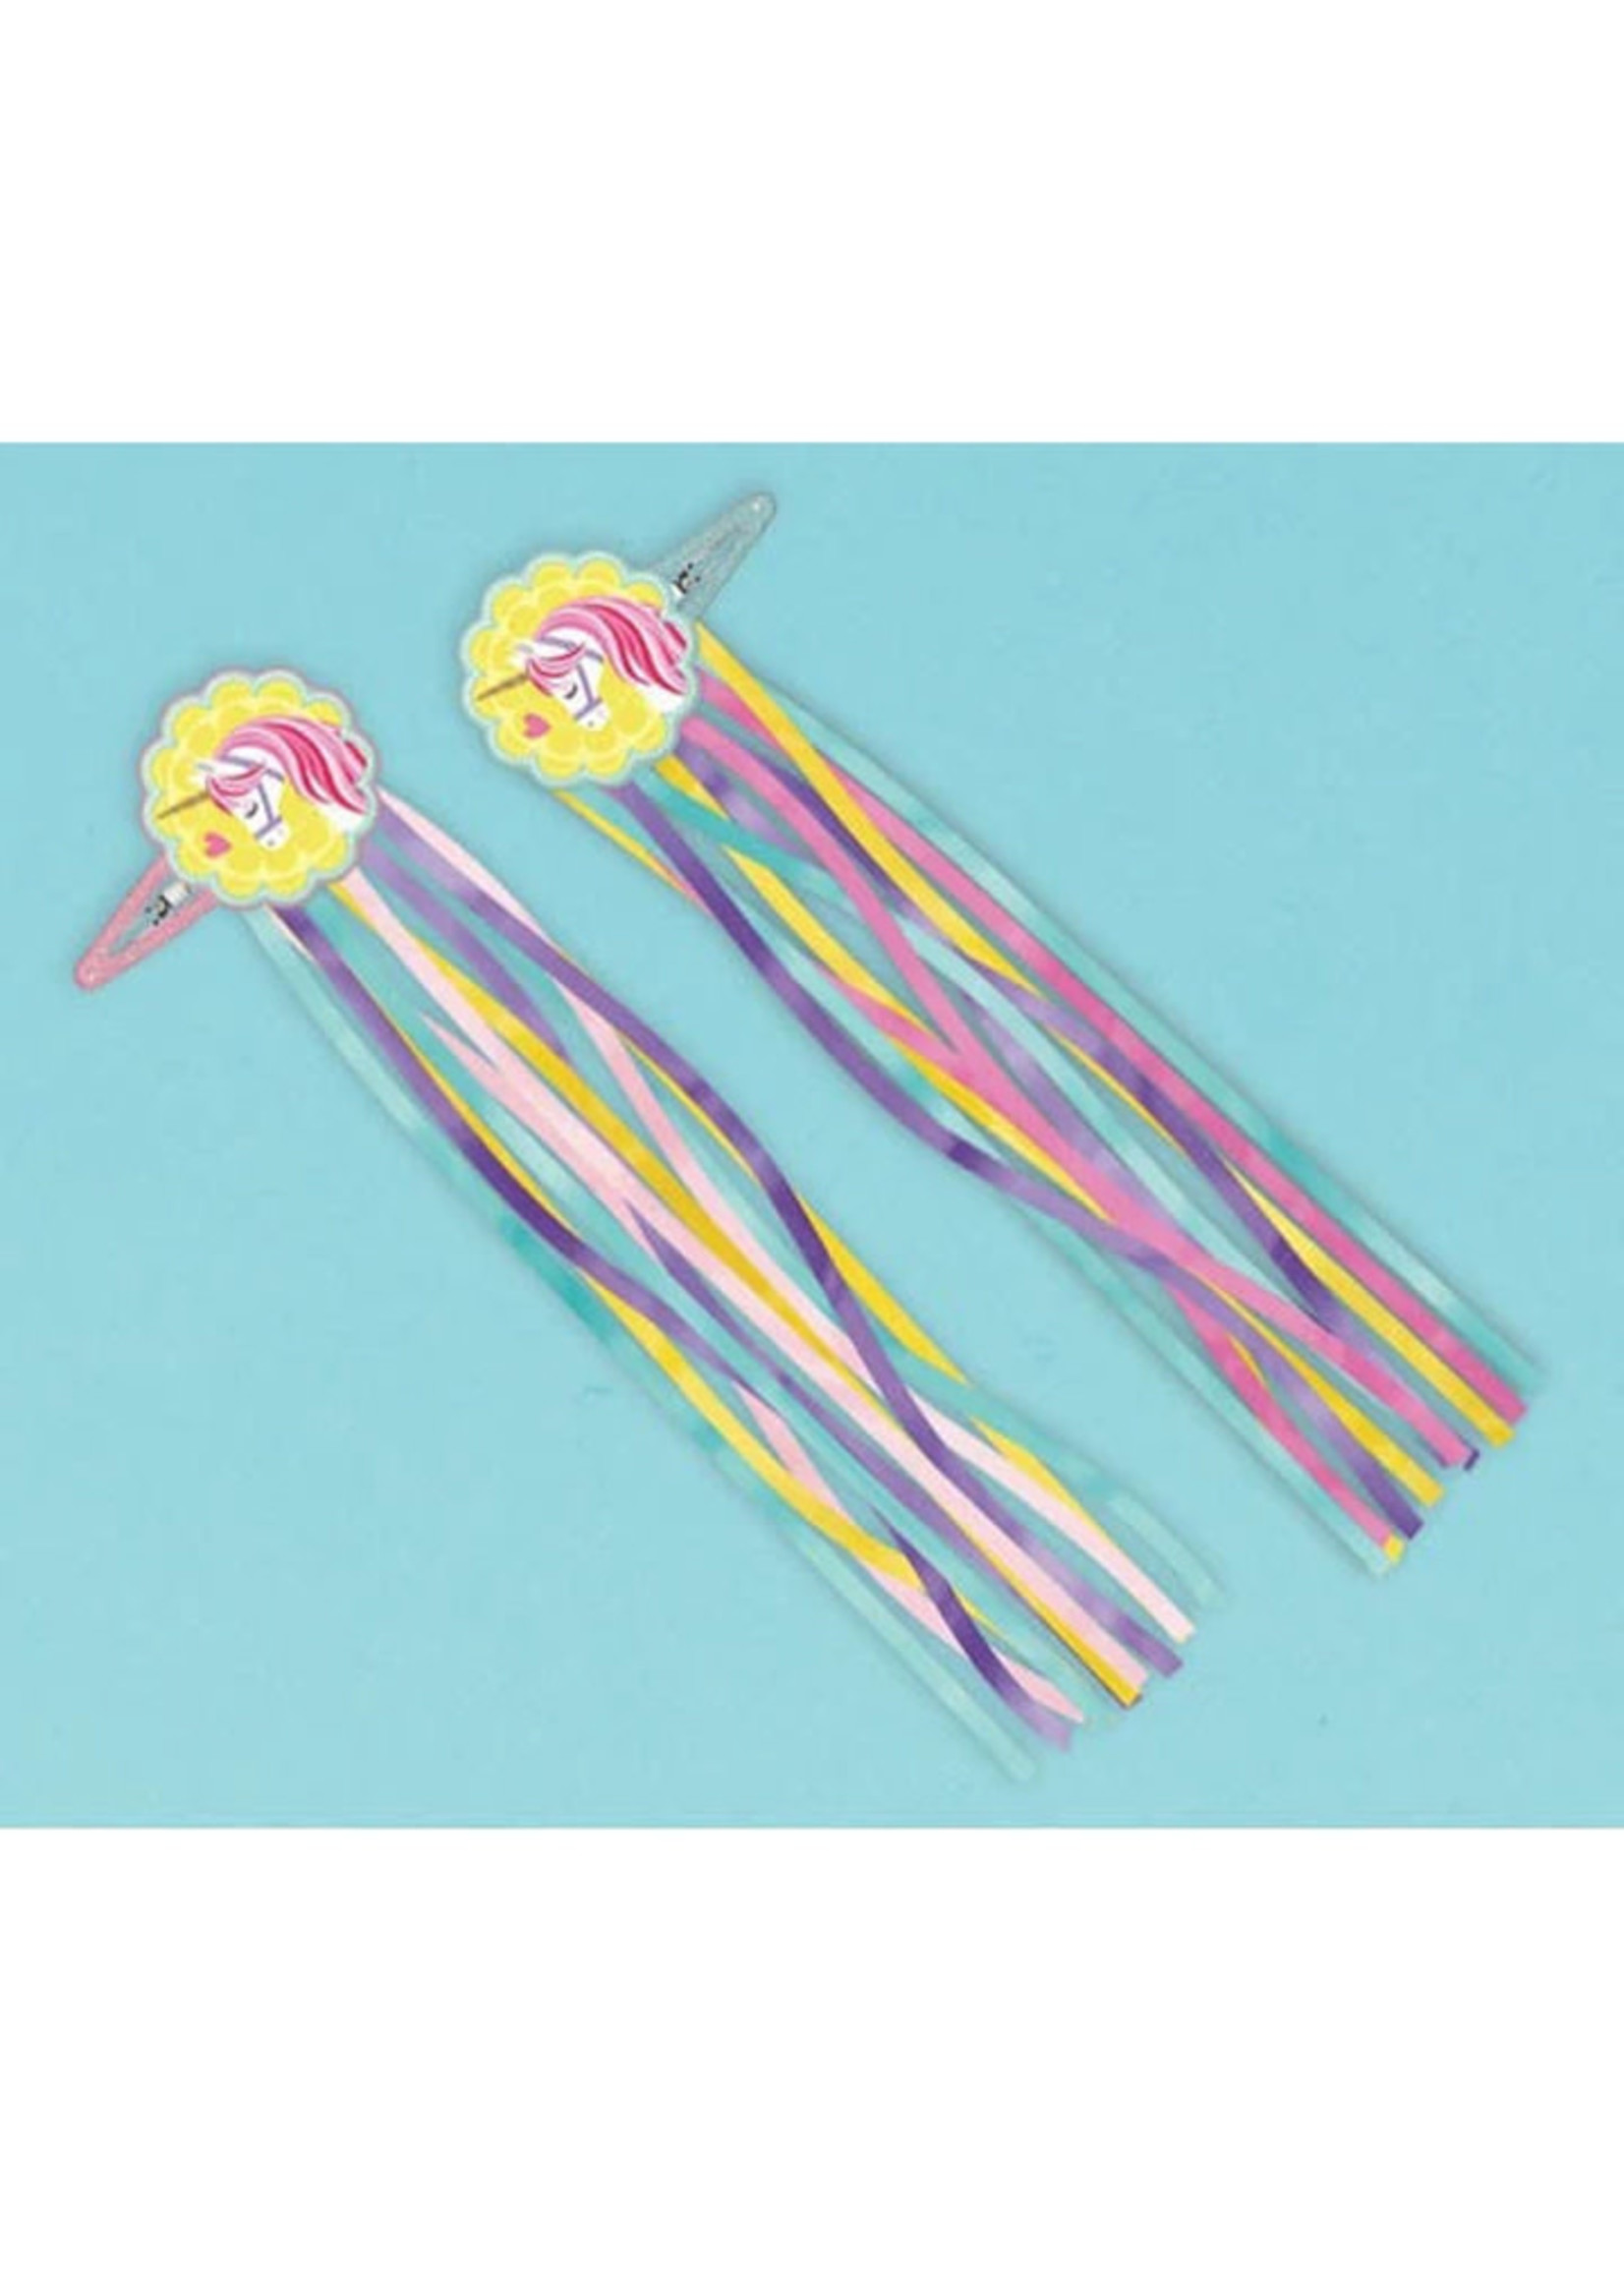 Magical Unicorn Hair Accessories - 4ct